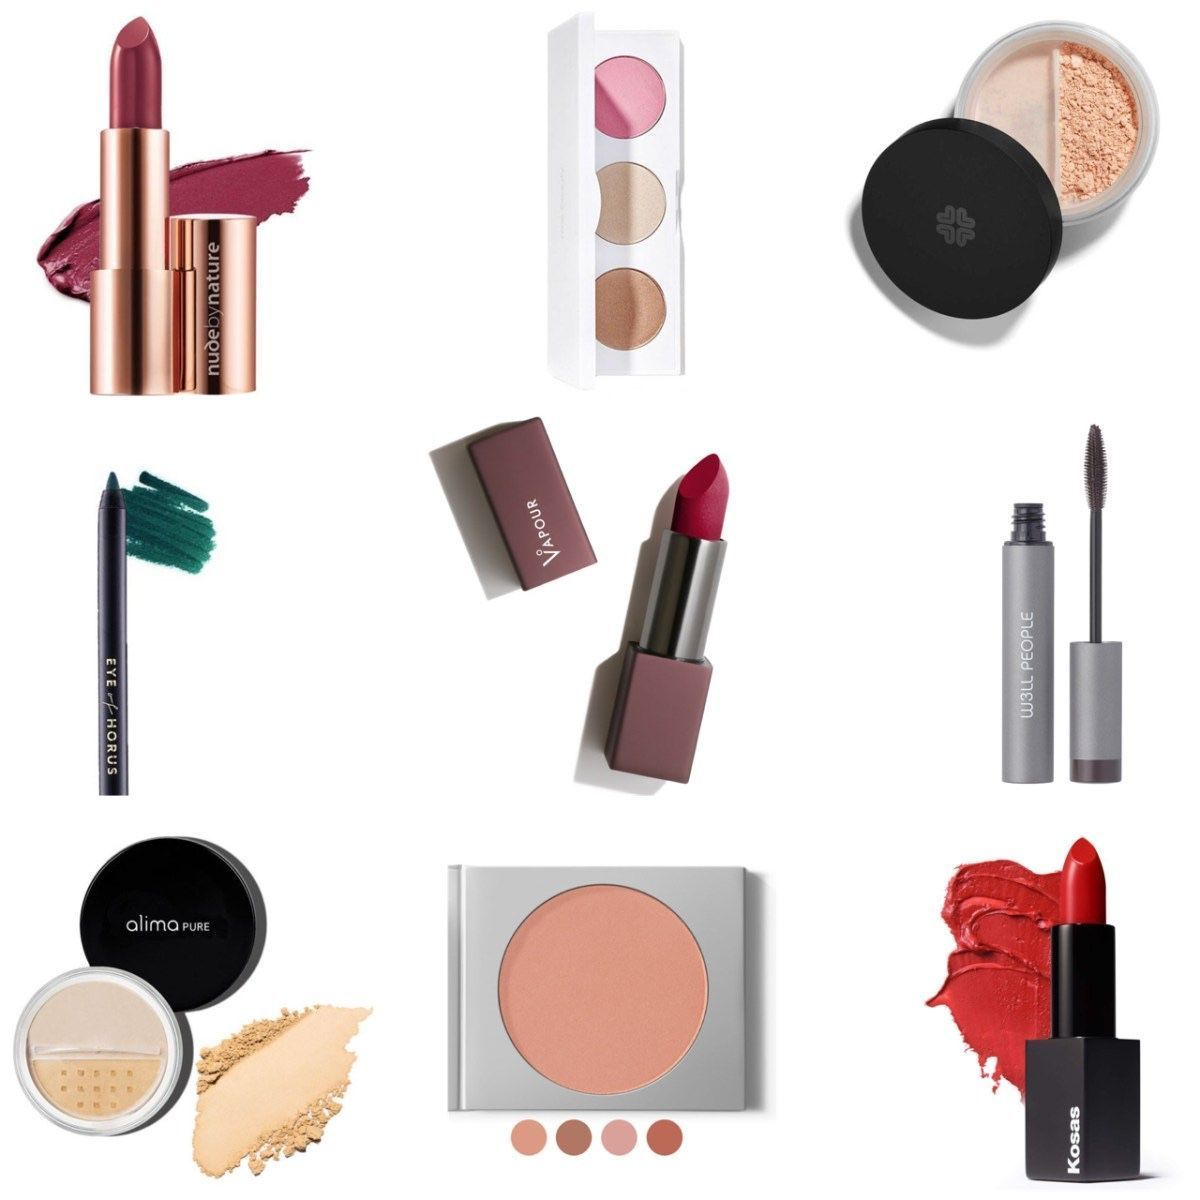 If you had to single out ONE clean, green makeup item this month, what would it be?  https://t.co/snn8AMLAJr  @Anagoesgreen @Wonderlusting_ @the_eco_Logical @WOWbeaute @katie_j_hill  @KosasCosmetics @rmsbeauty @AlimaPure @nudebynature @eyeofhorus_mu @LilyLolo @vapourbeauty https://t.co/YKvecFMeeS